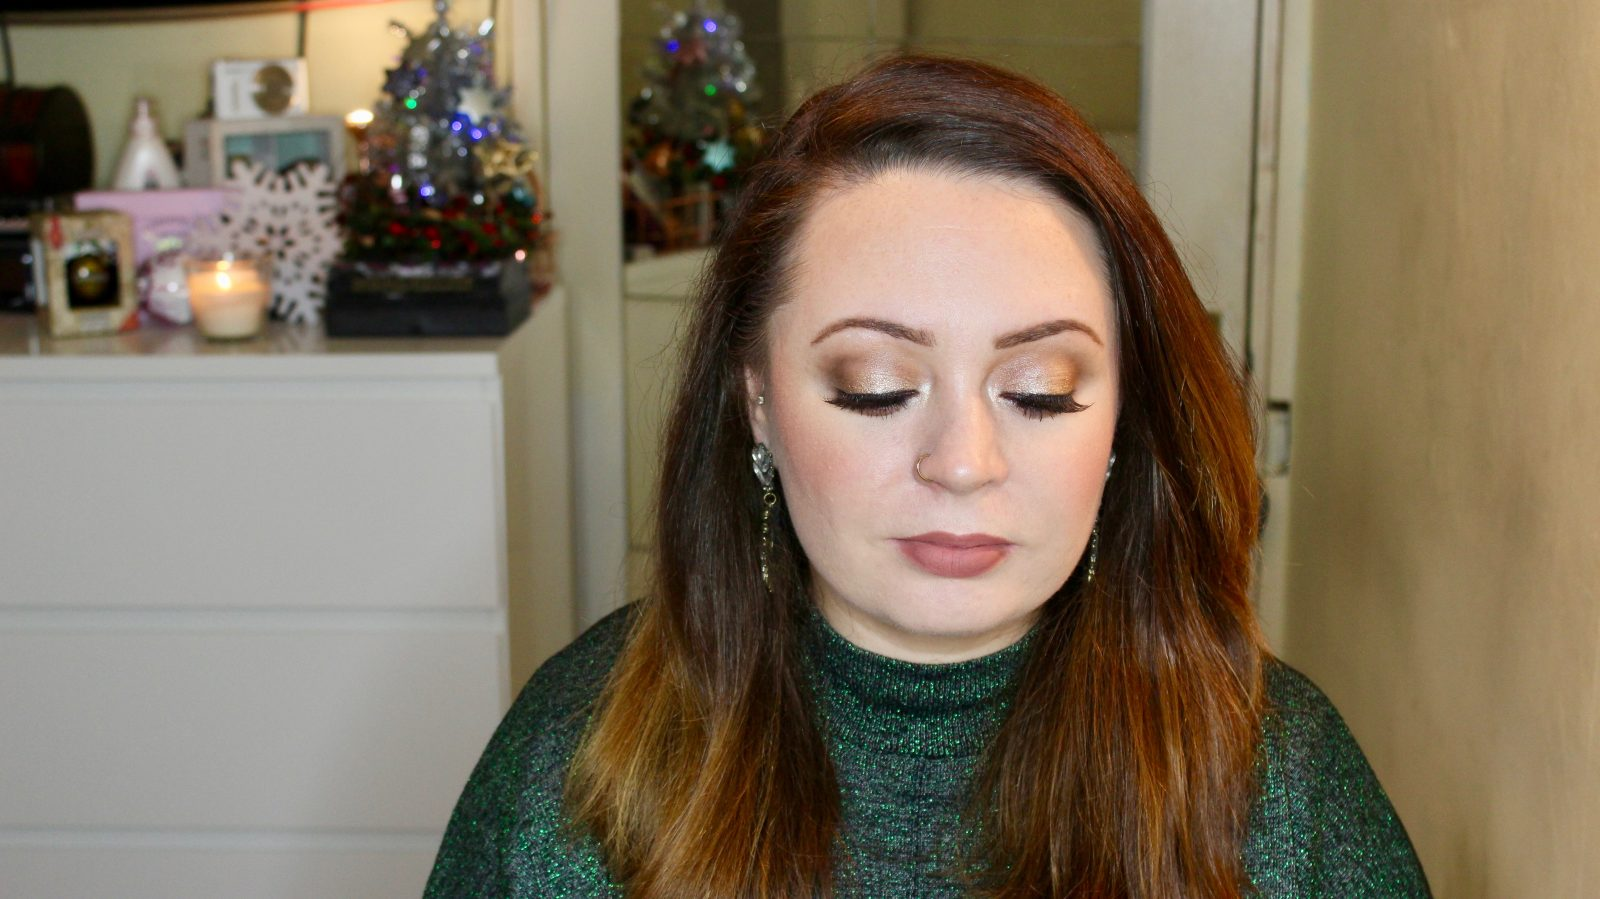 Irish beauty blogger beautynook